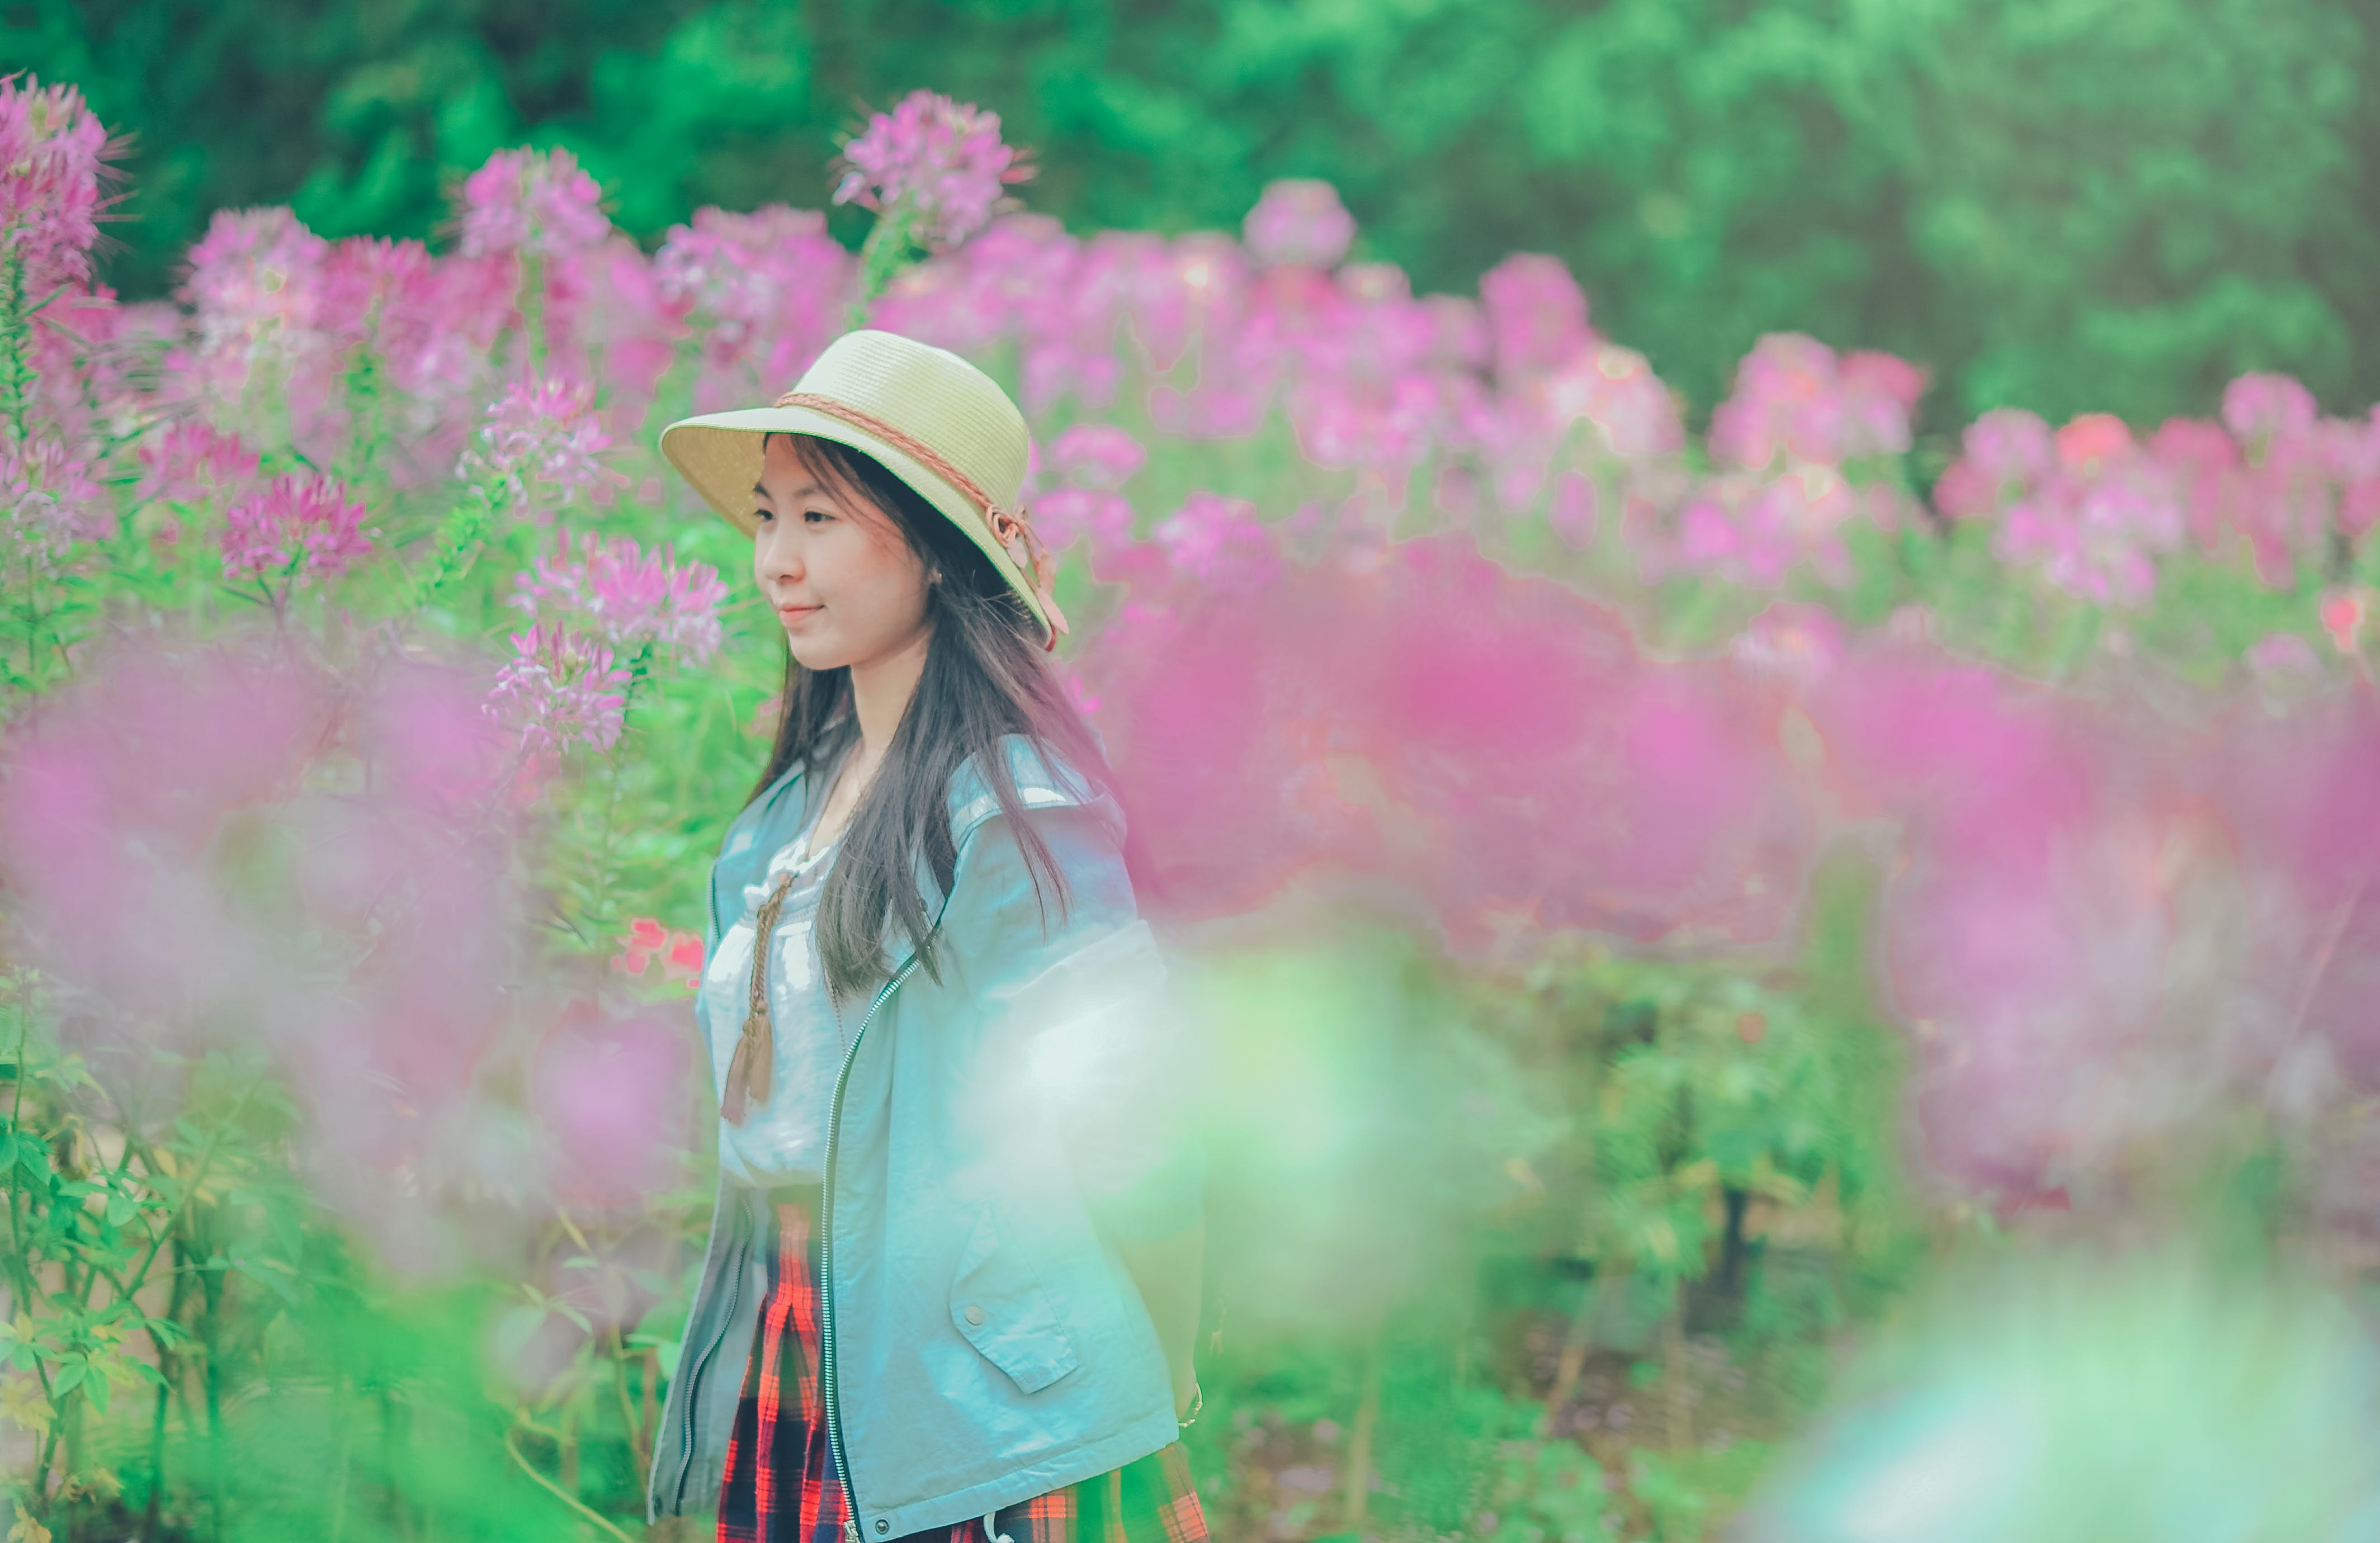 Woman Wearing Sun Hat and Blue Jacket Standing Surrounded by Flowers